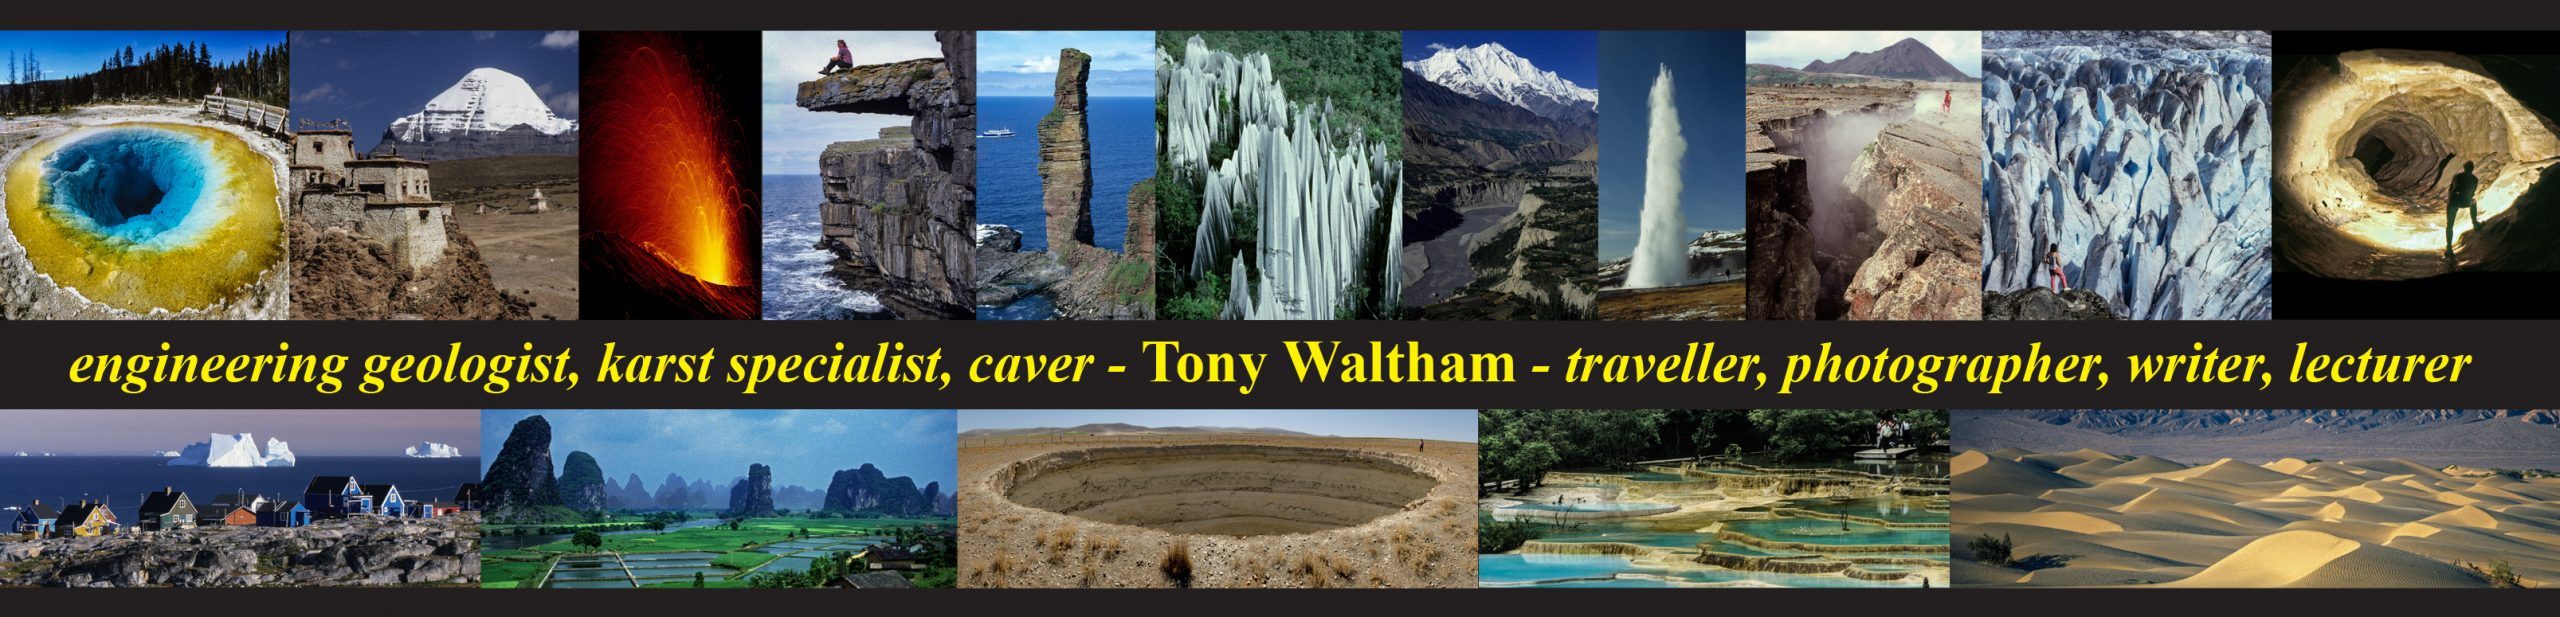 Tony Waltham – traveller,photographer,writer,lecturer